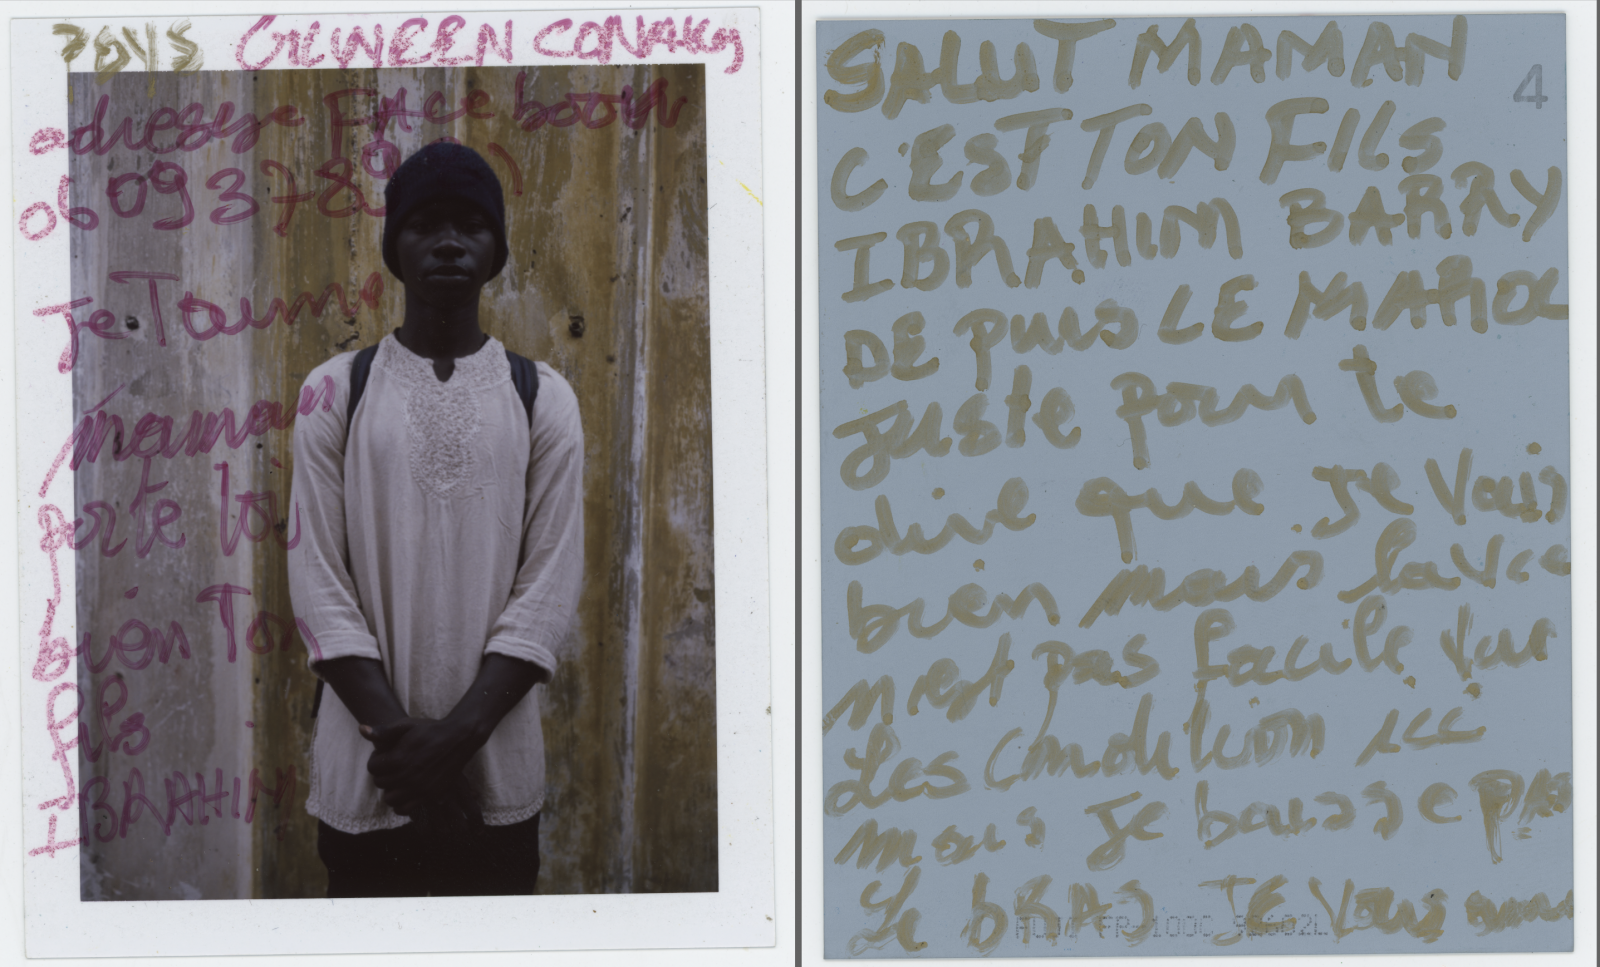 Country: Guinea Conakry I love you, Mom, take care. your son, Ibrahim Hi mom Here is your son, Ibrahim Barry, writing to you from Morocco. I just wanted to tell you that I'm doing ok, but life is hard here. Conditions aren't the best, but I won't give up. Love you all